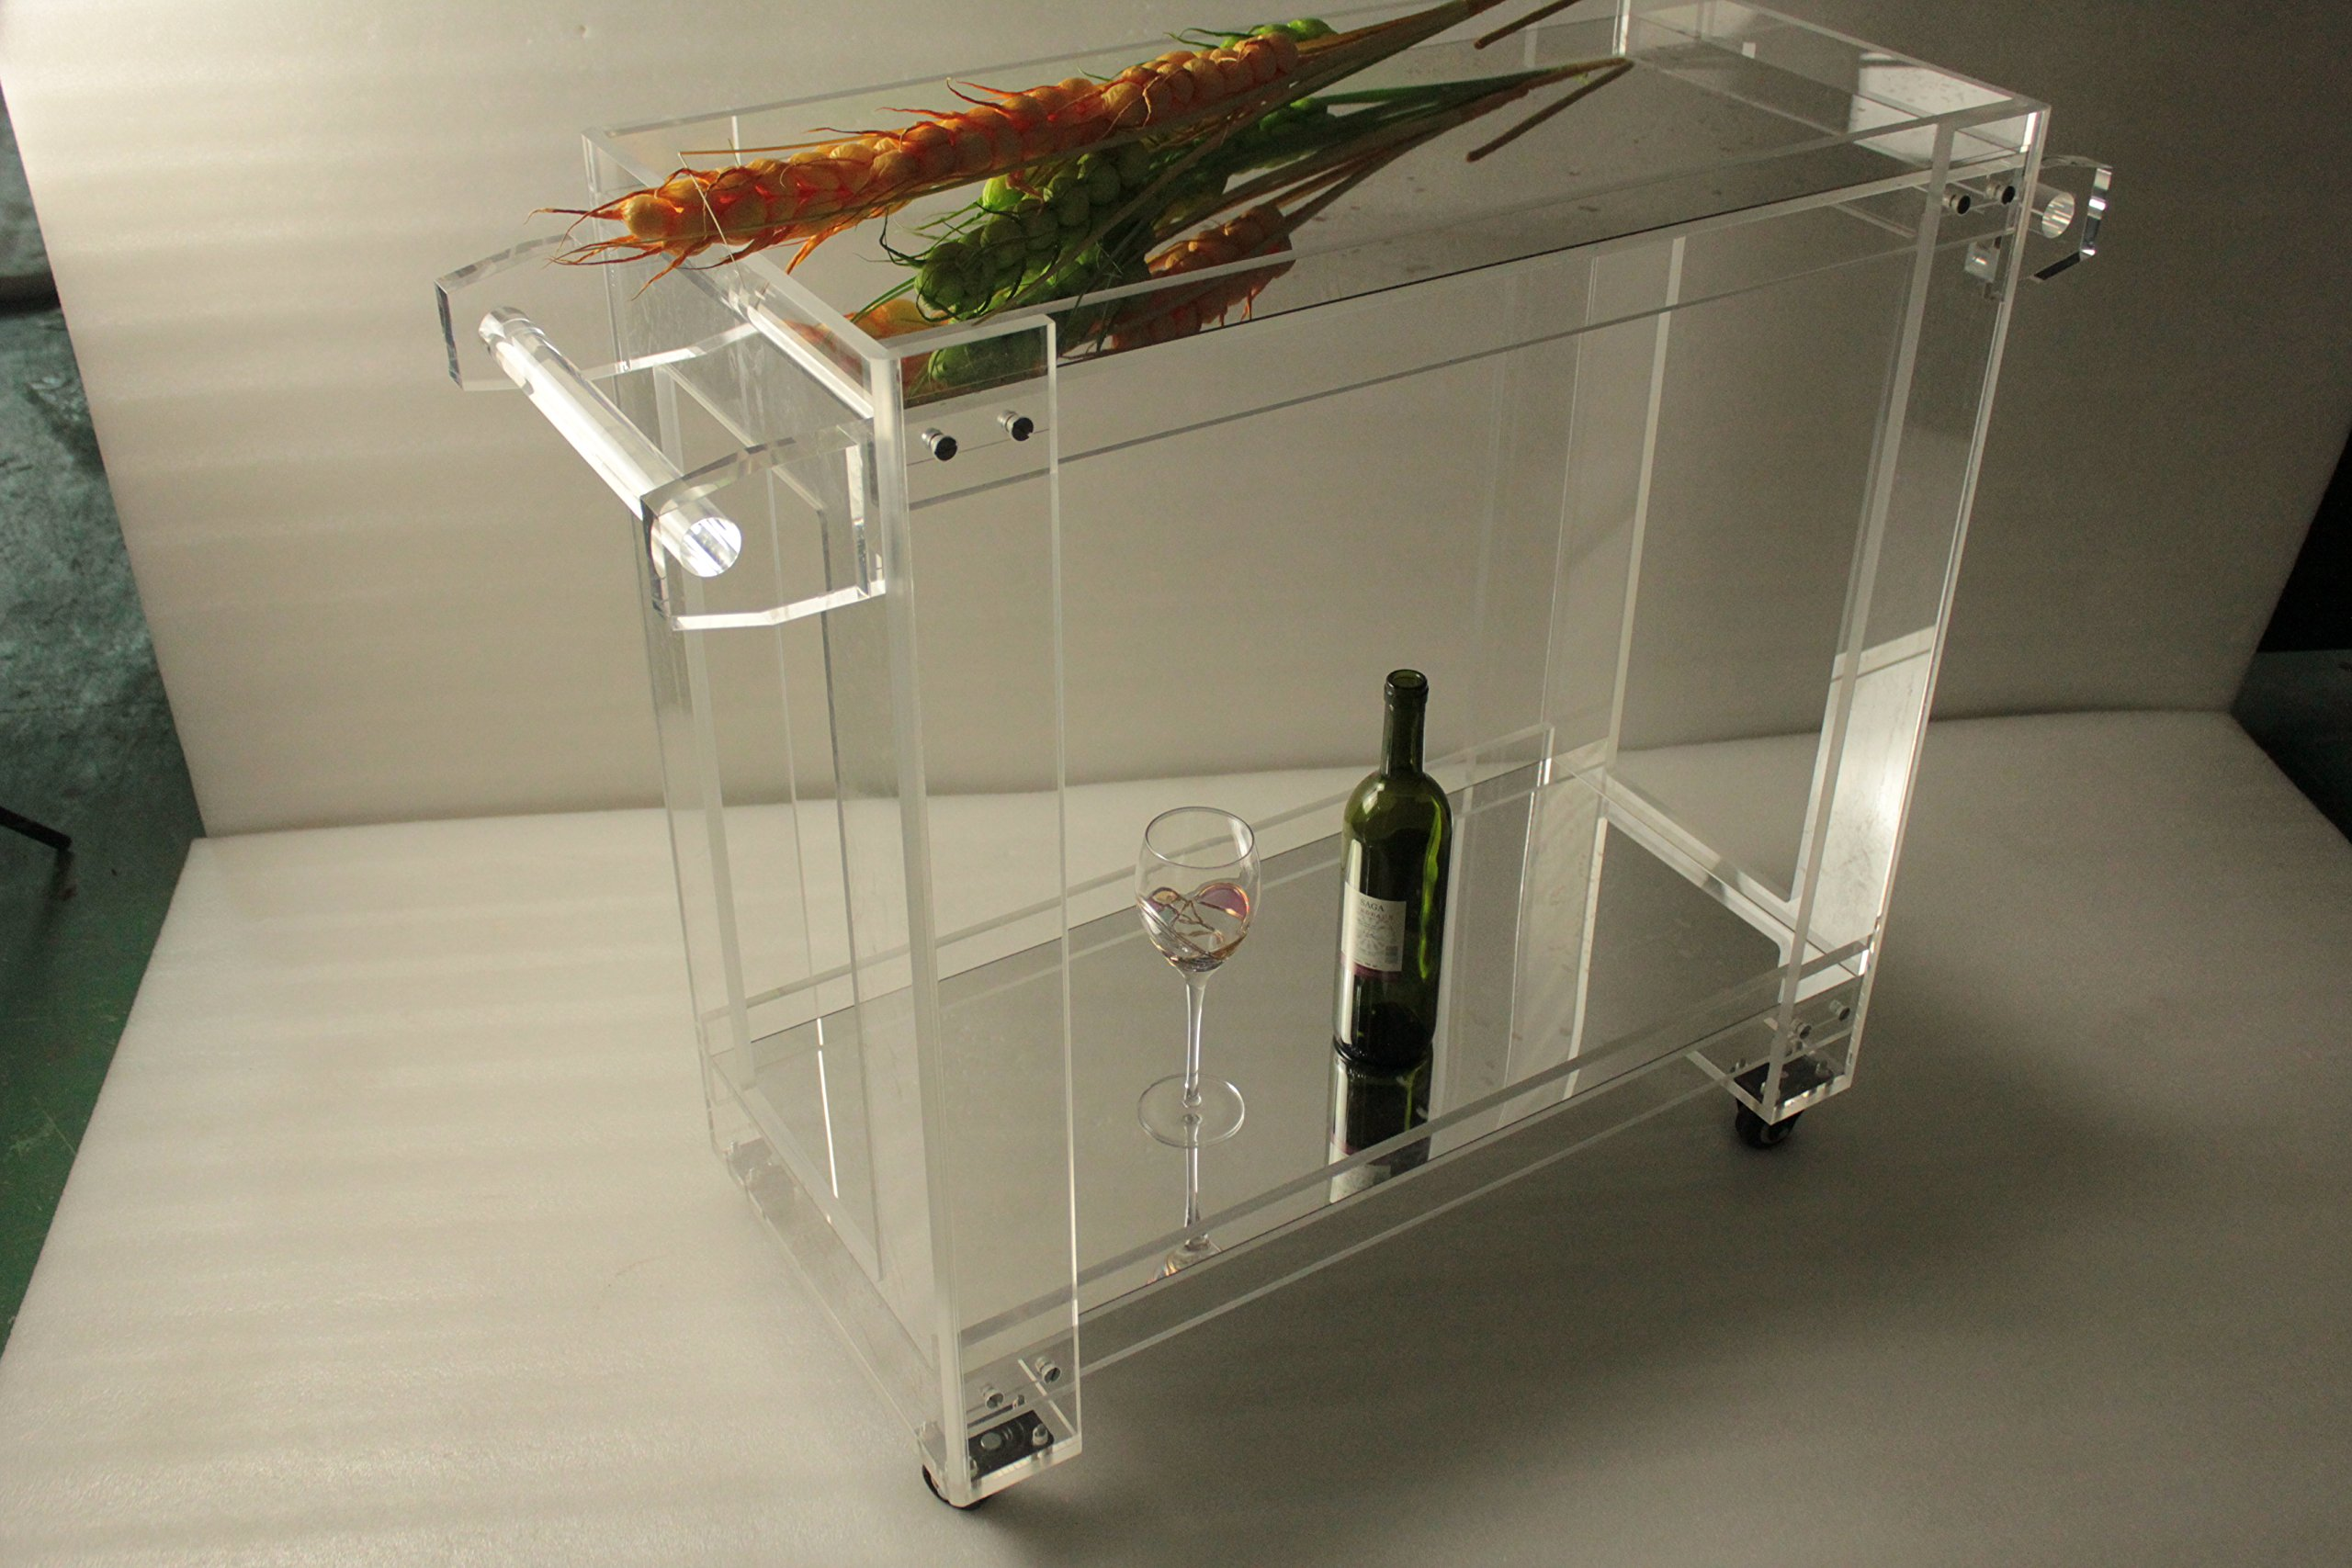 ONE LUX 2 shelves Rolling High transparency acrylic food bar cart,Mirror Plexiglass serving trolley on casters KD Packed